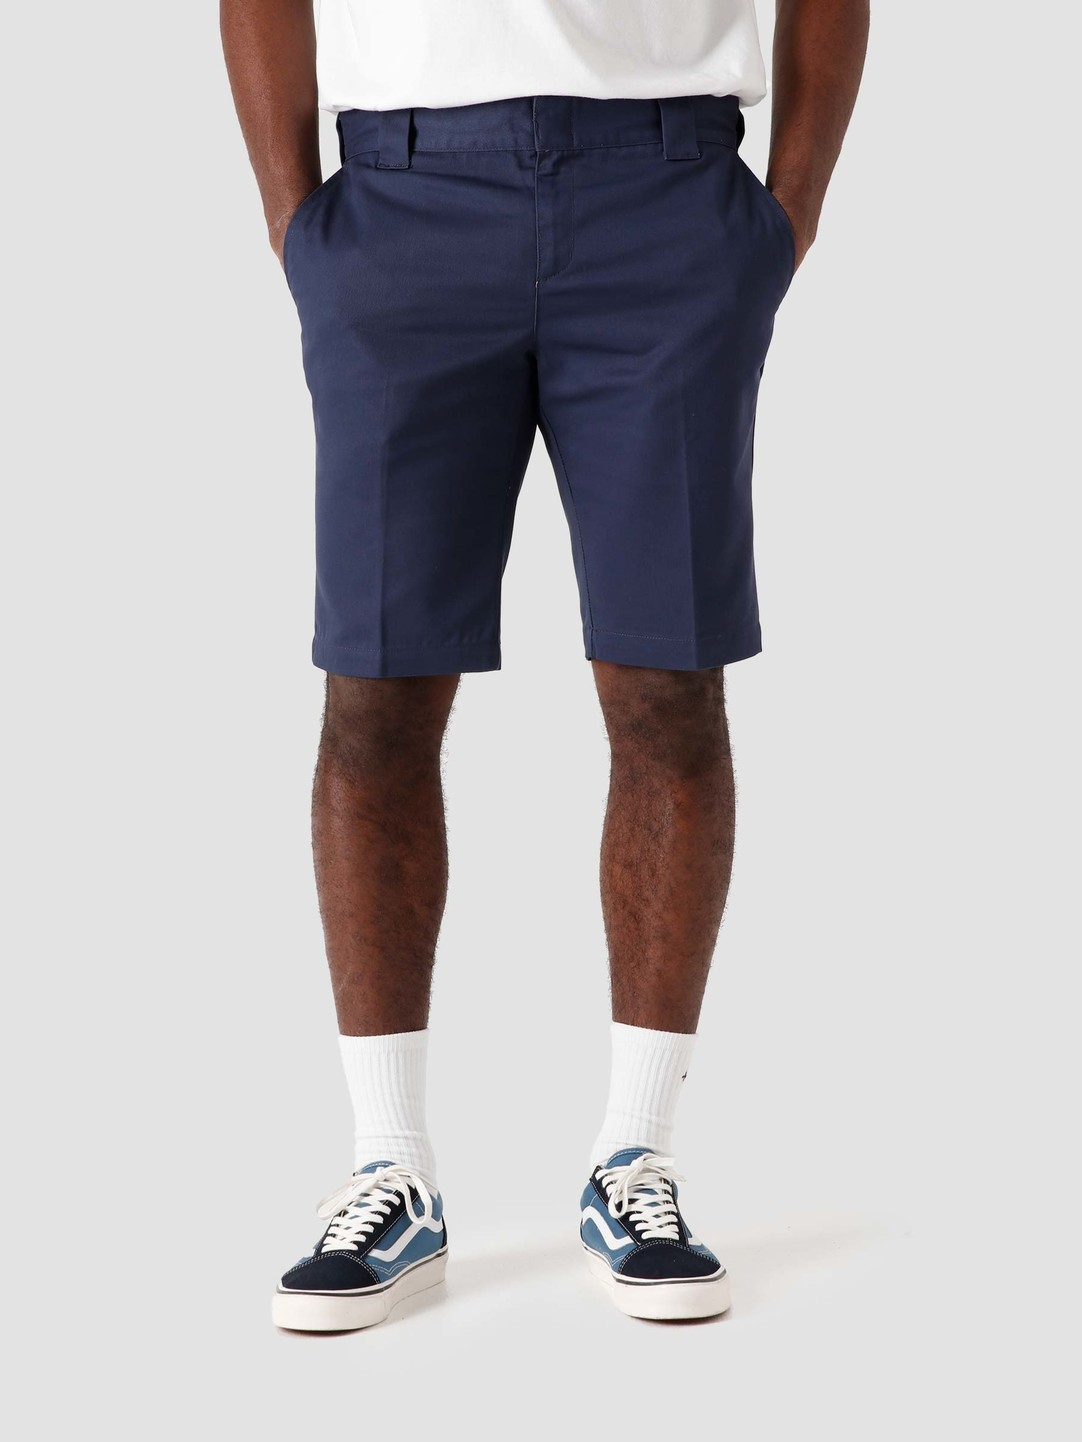 Dickies Dickies Slim Fit Short Navy Blue DK0A4XB1NV01